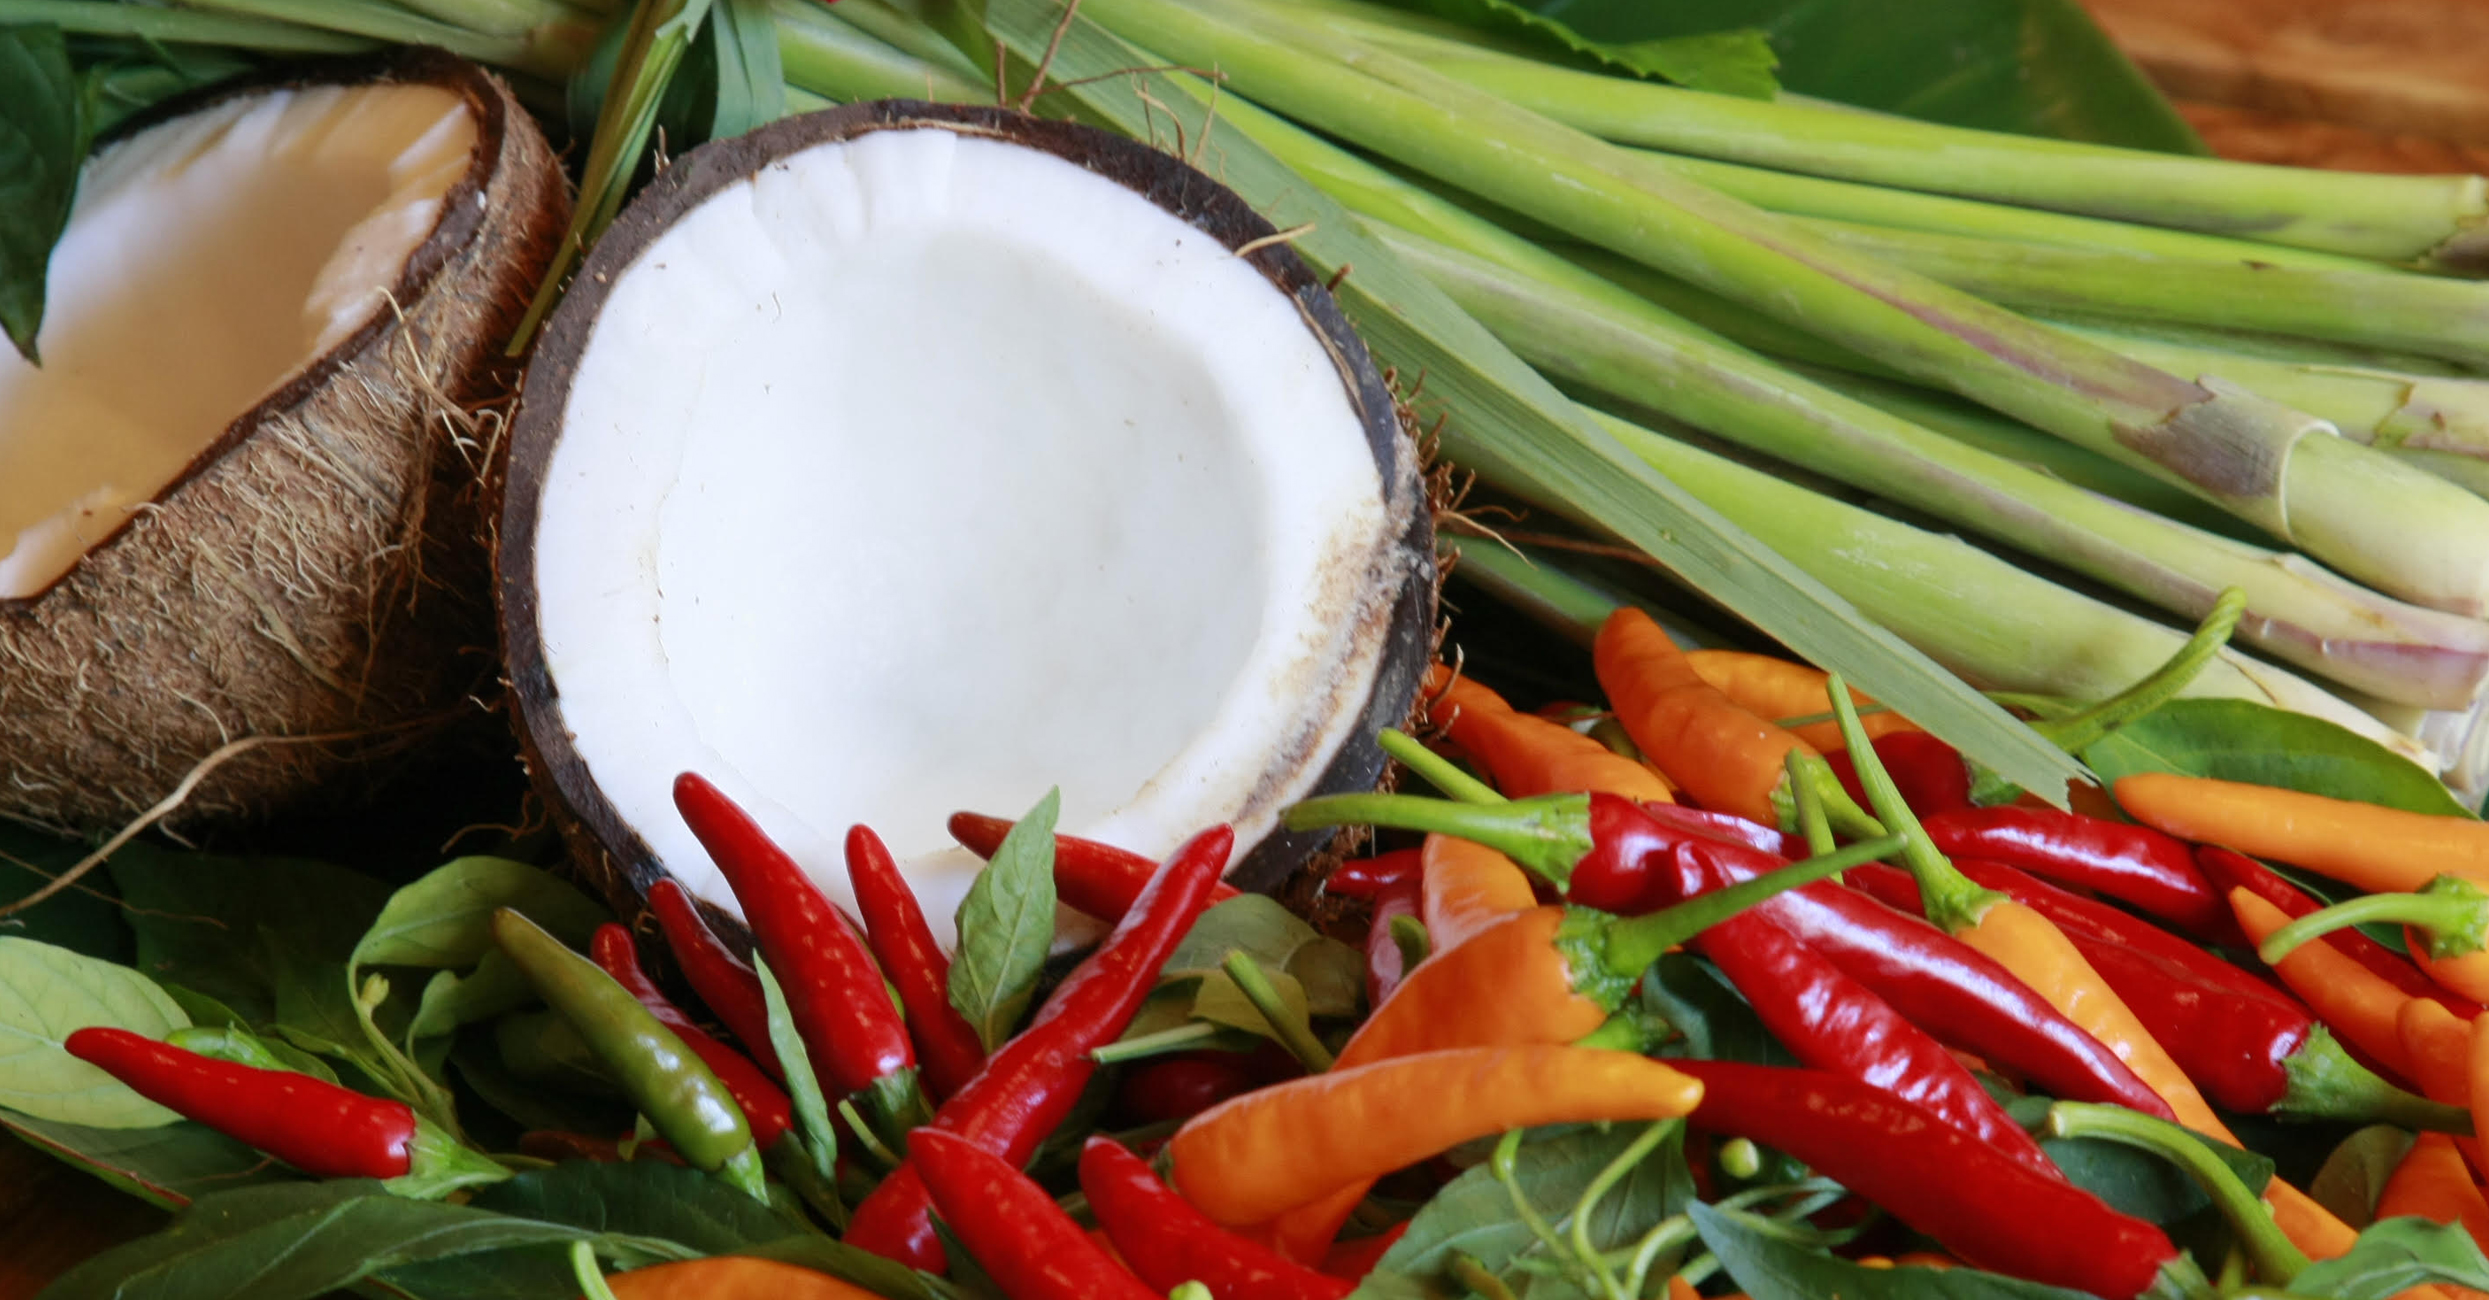 Coconut and Thai chilli peppers